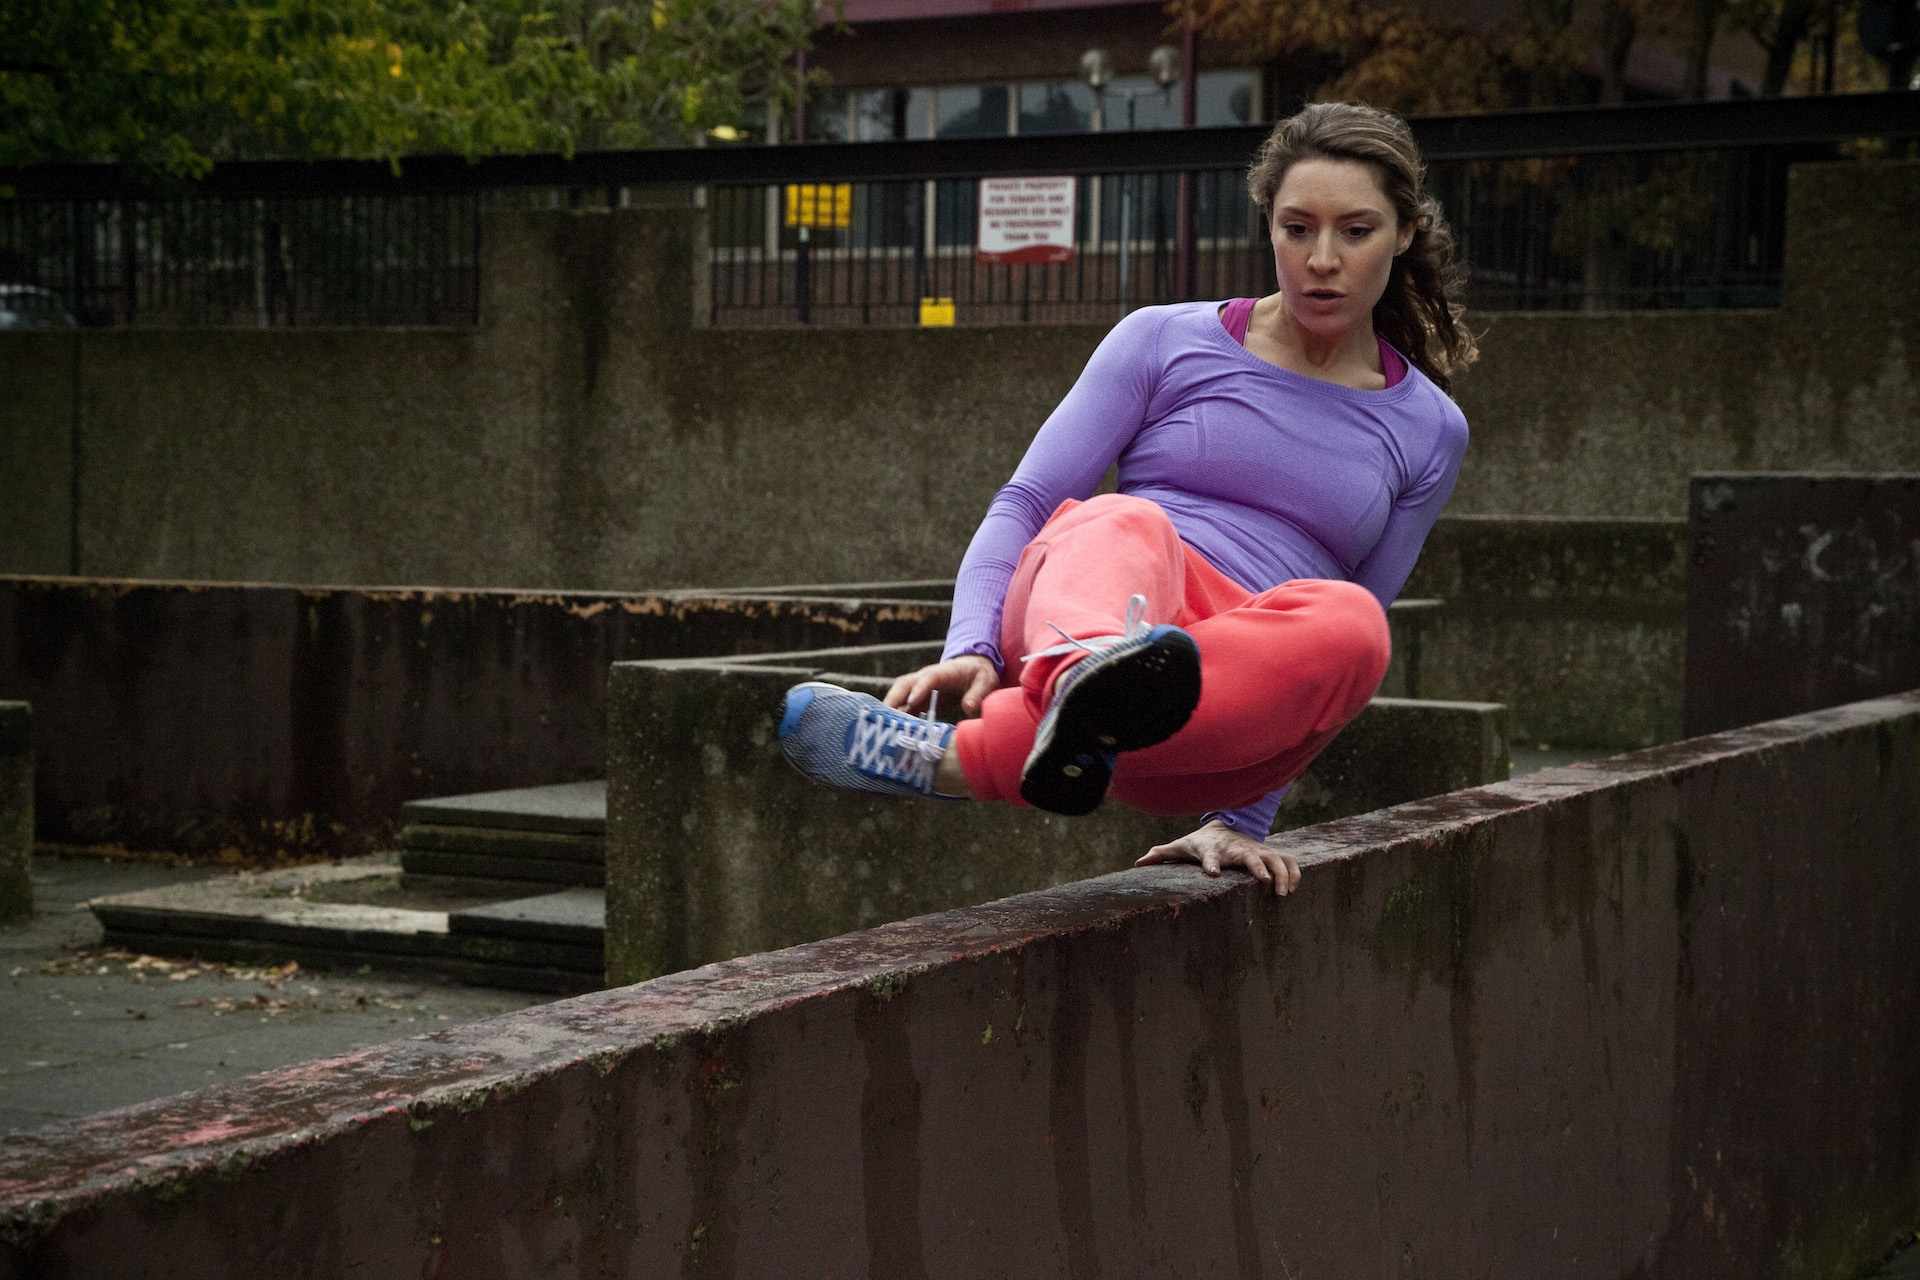 Amy slide monkey parkour woman london